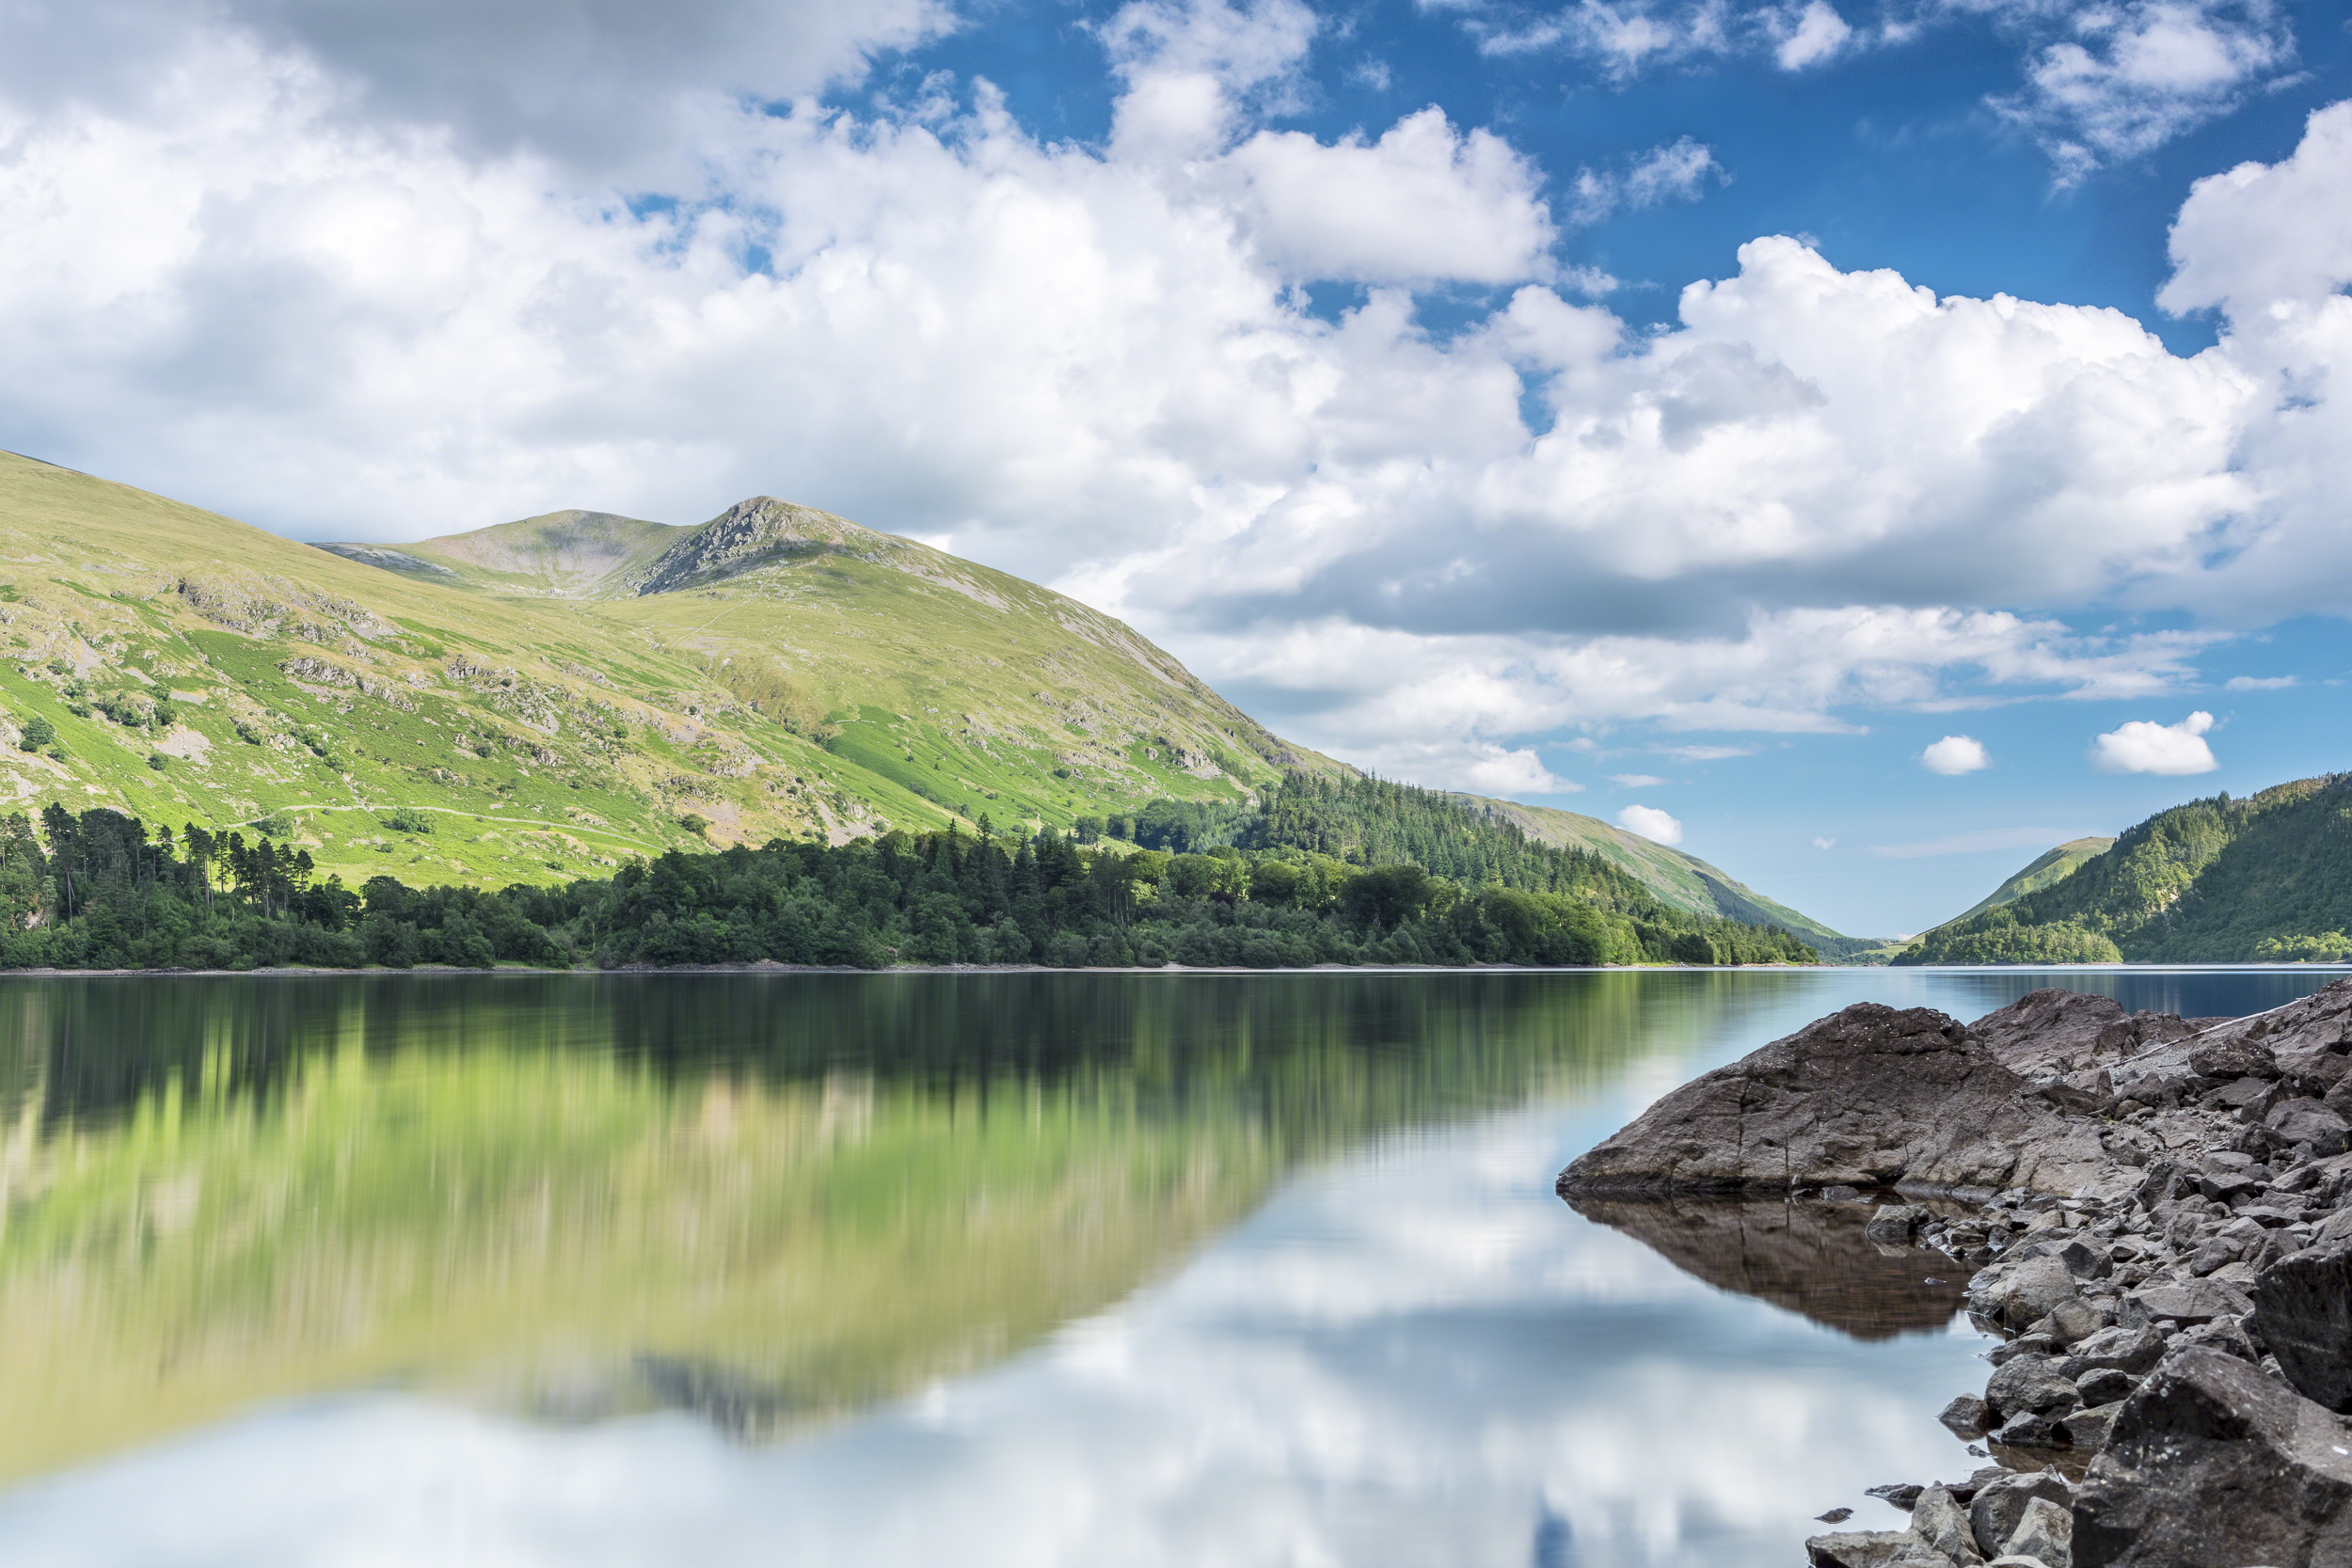 Thirlmer Reservoir Reflection-1.jpg